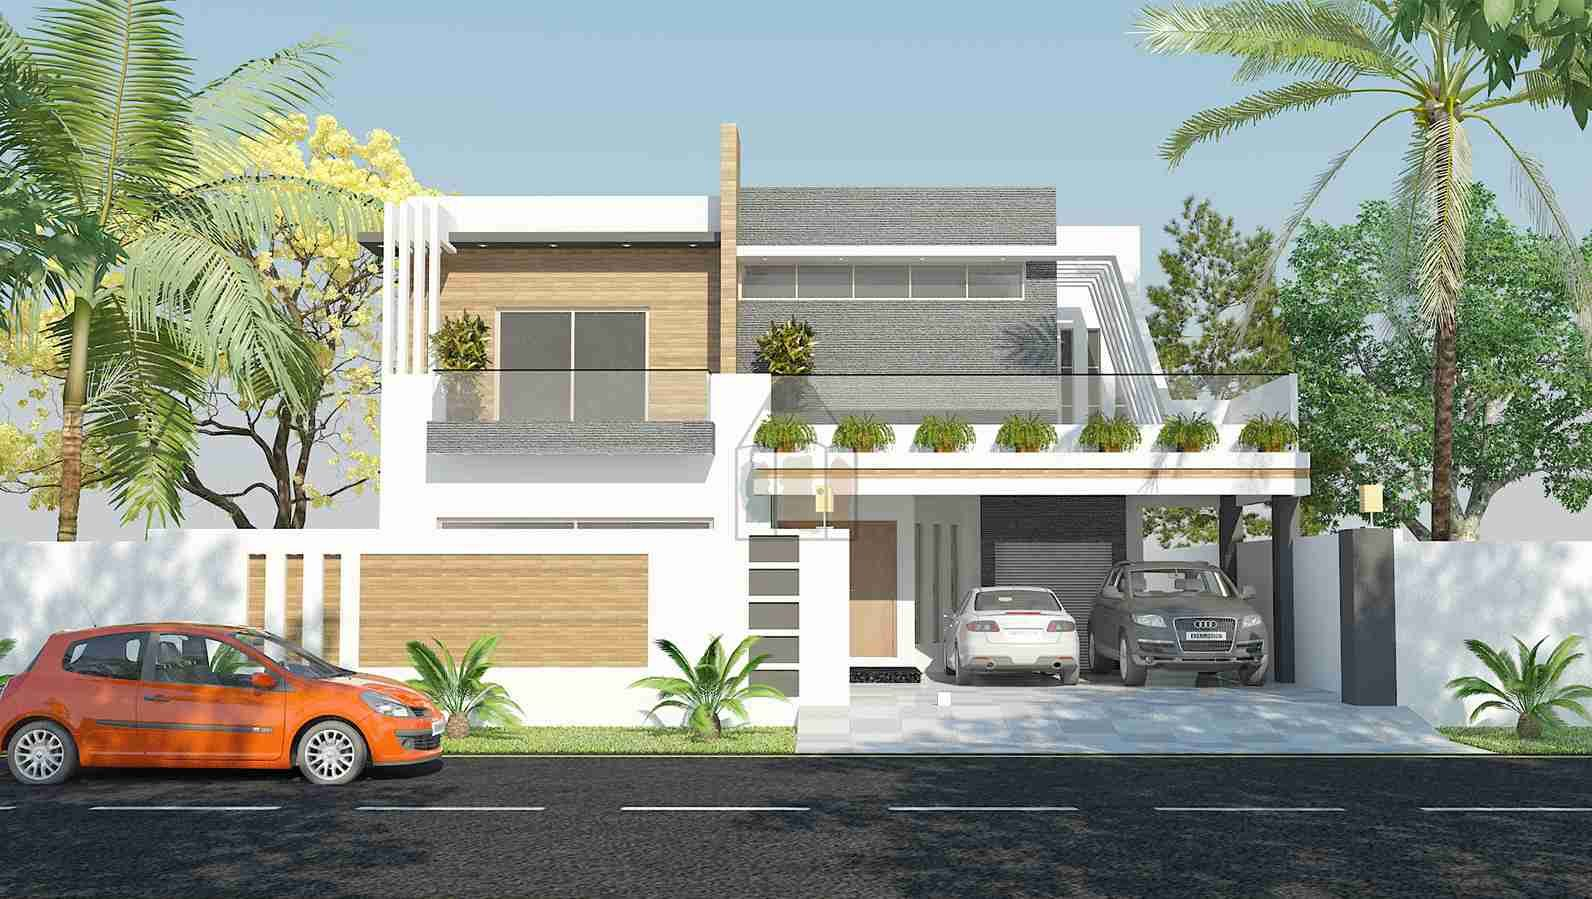 Front Elevation Of 1 Kanal Houses : Kanal house design front elevation fachadas facades of